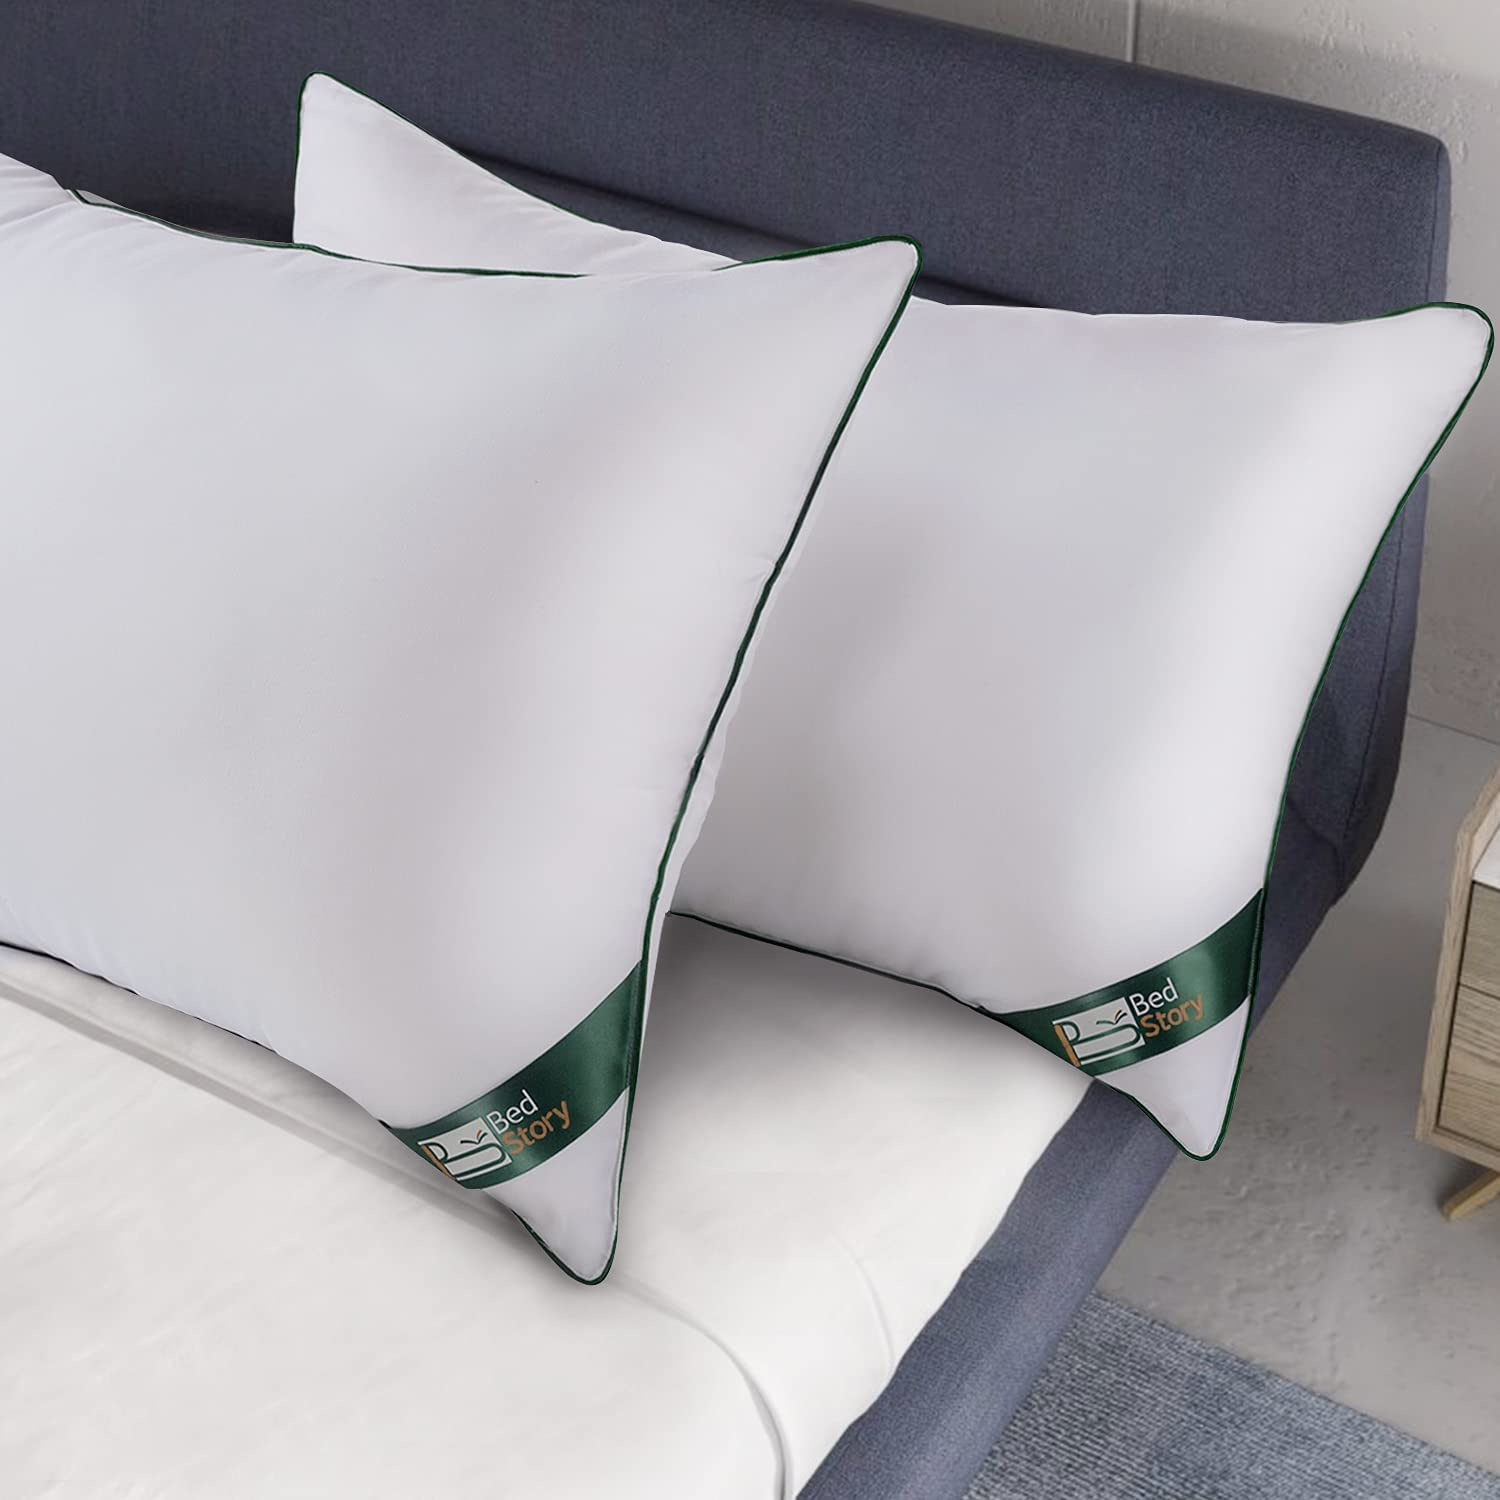 BedStory Selling Pillows for Sleeping 2 Pack B Al sold out. Size Ultra Standard Soft